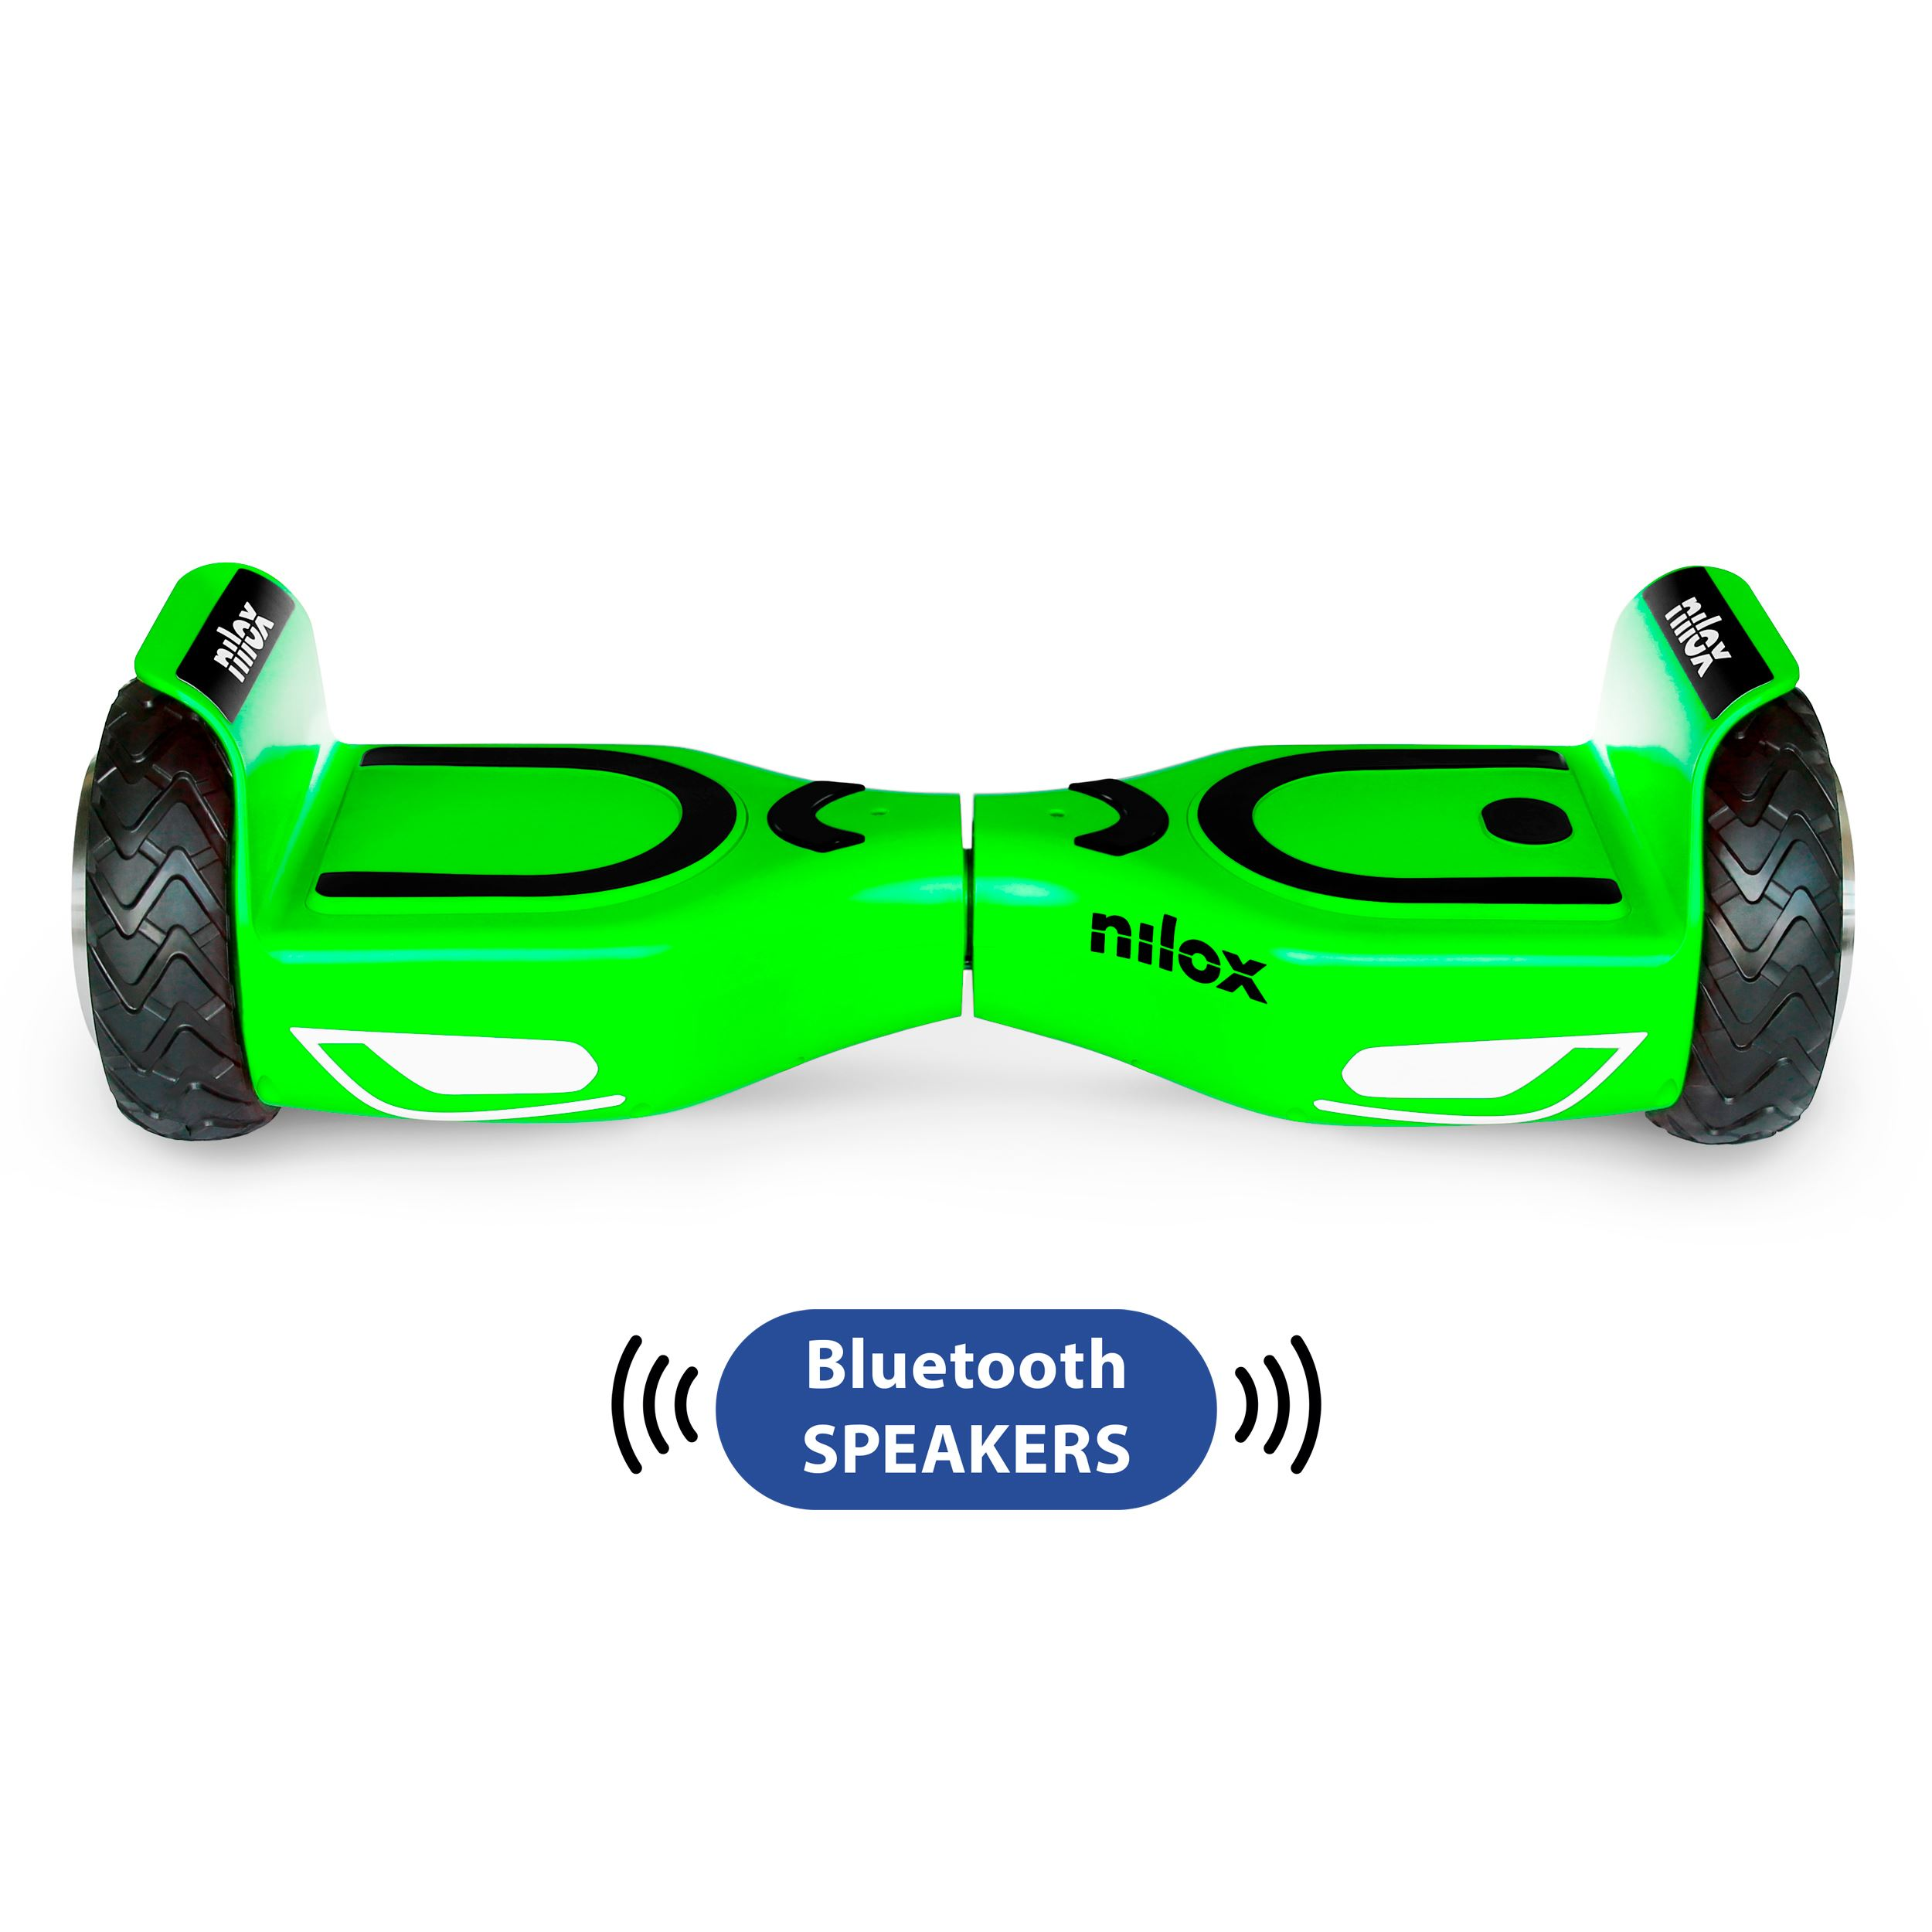 doc-2-hoverboard-plus-lime-green-30nxbk65bwn06-505303-hd.jpg